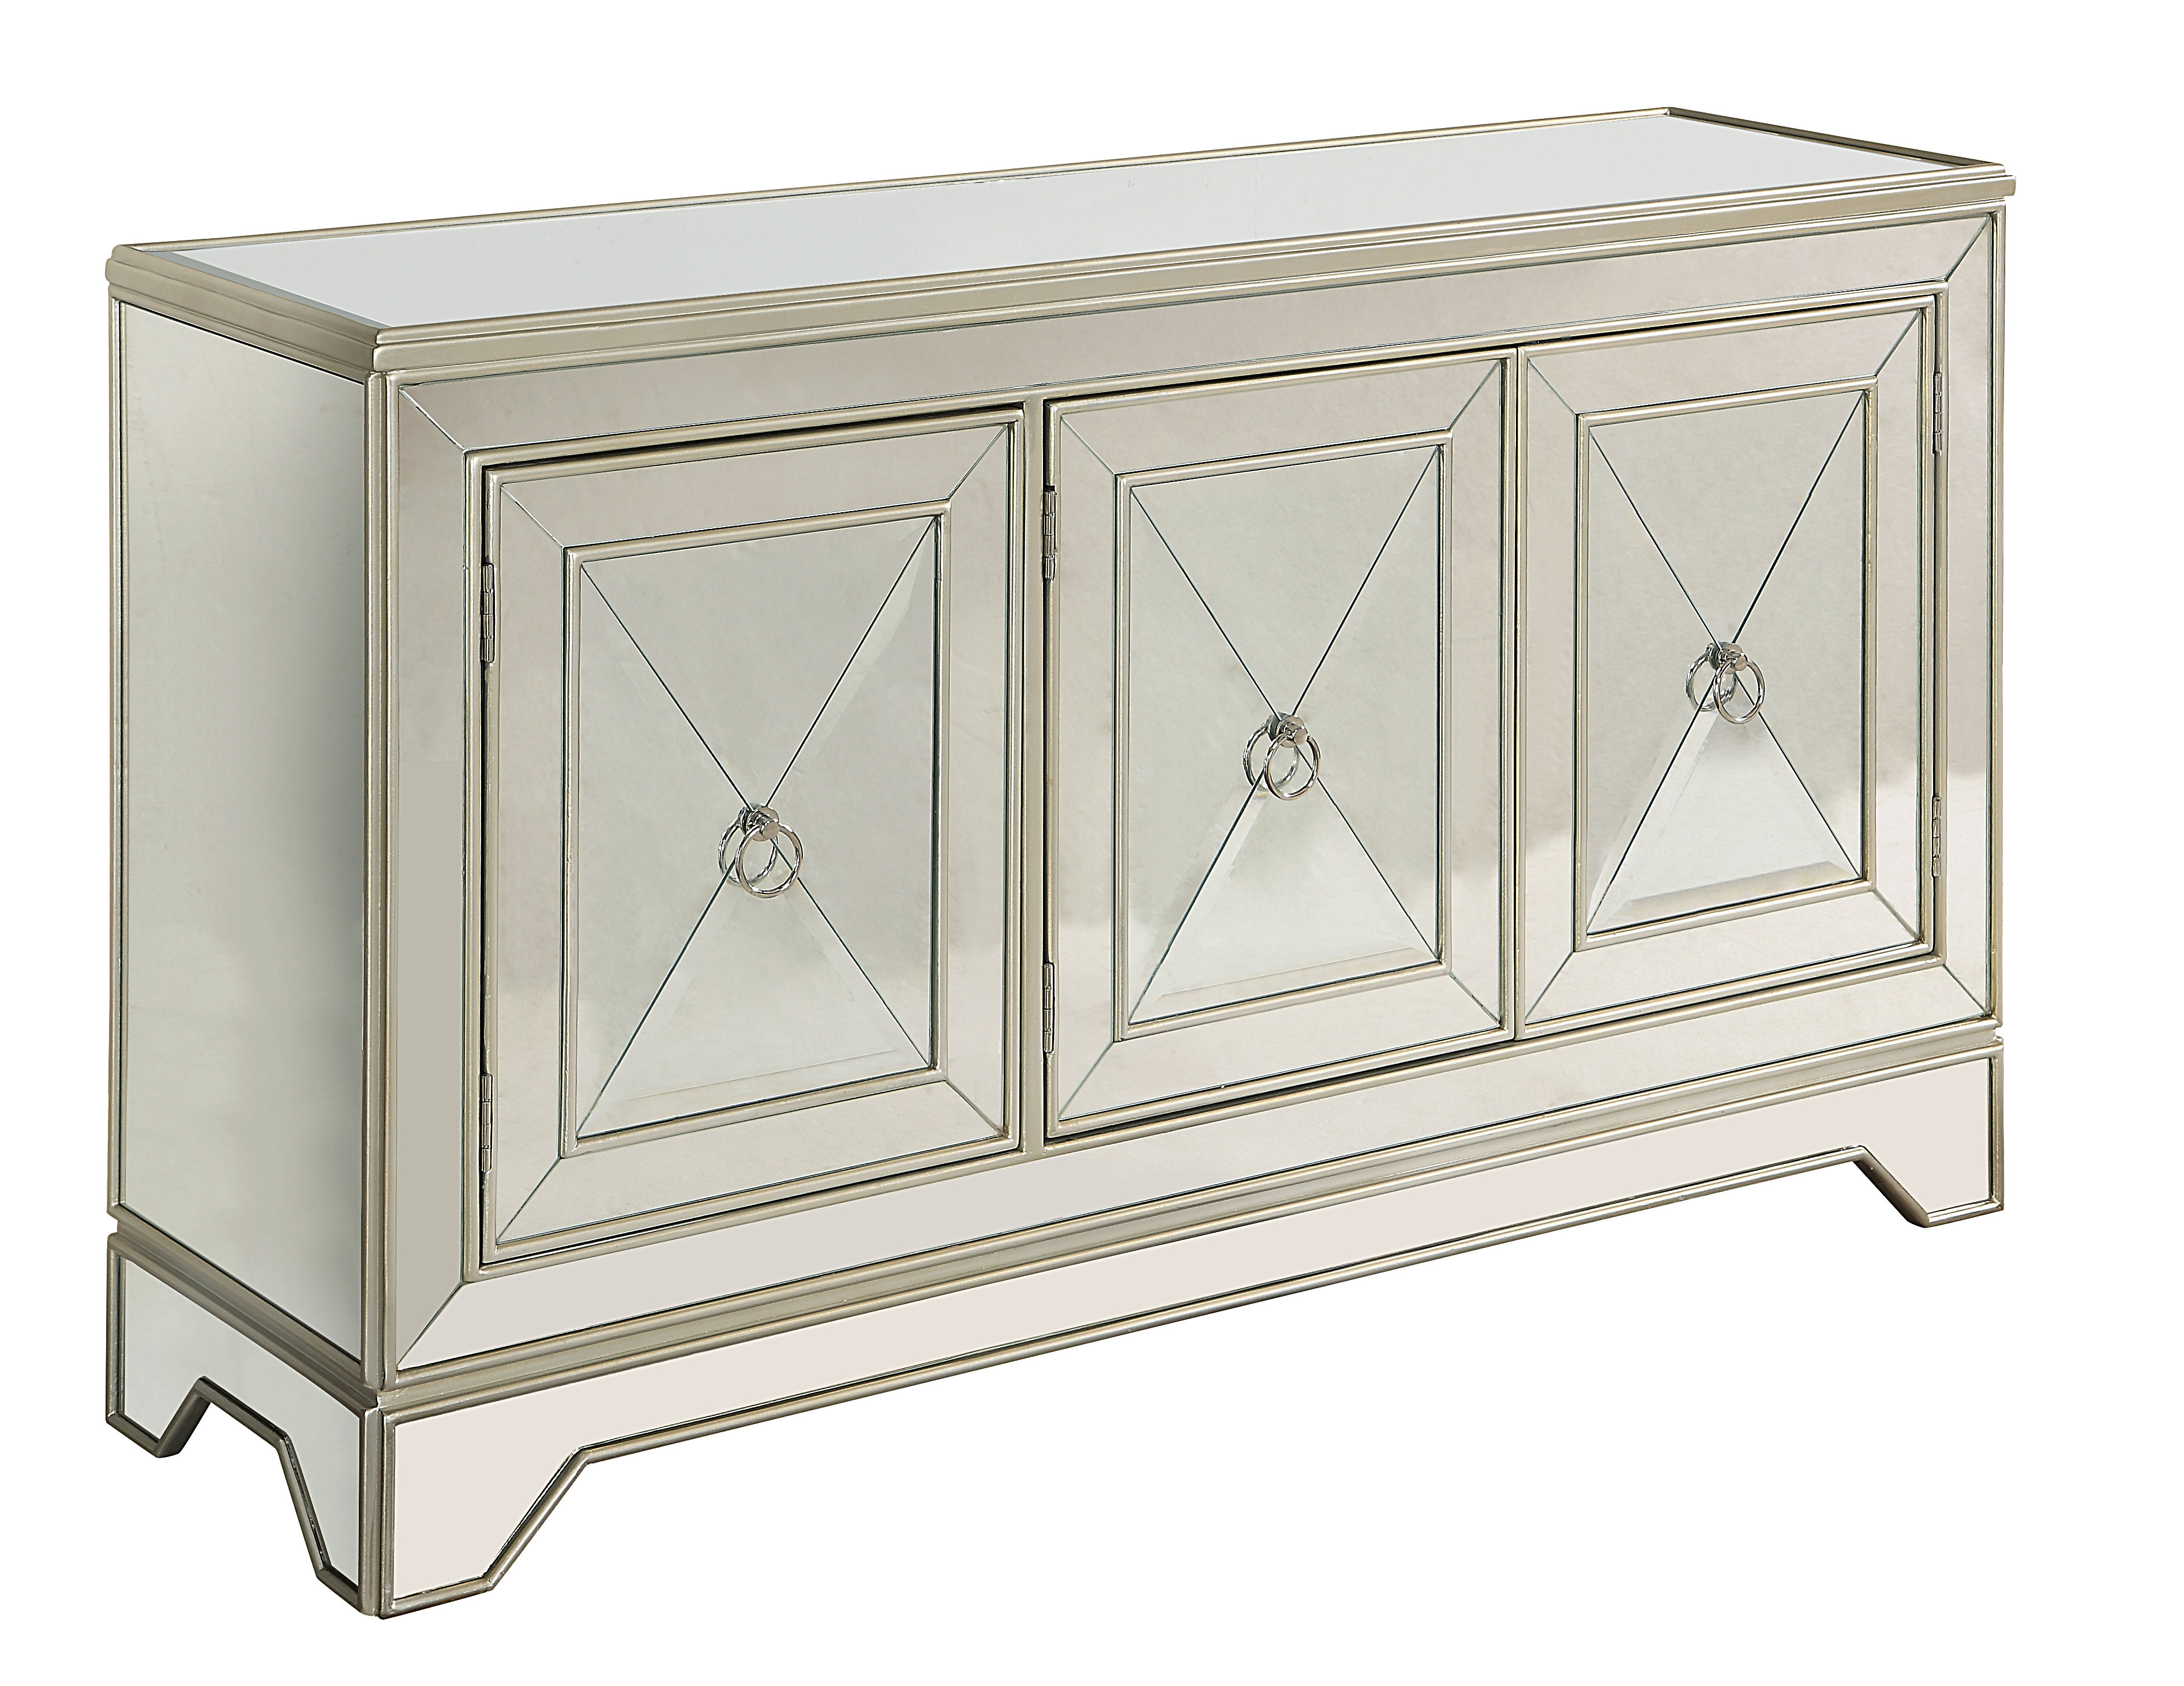 Sideboard / Credenza Mirrored Sideboards | Joss & Main Throughout Senda Credenzas (View 20 of 20)